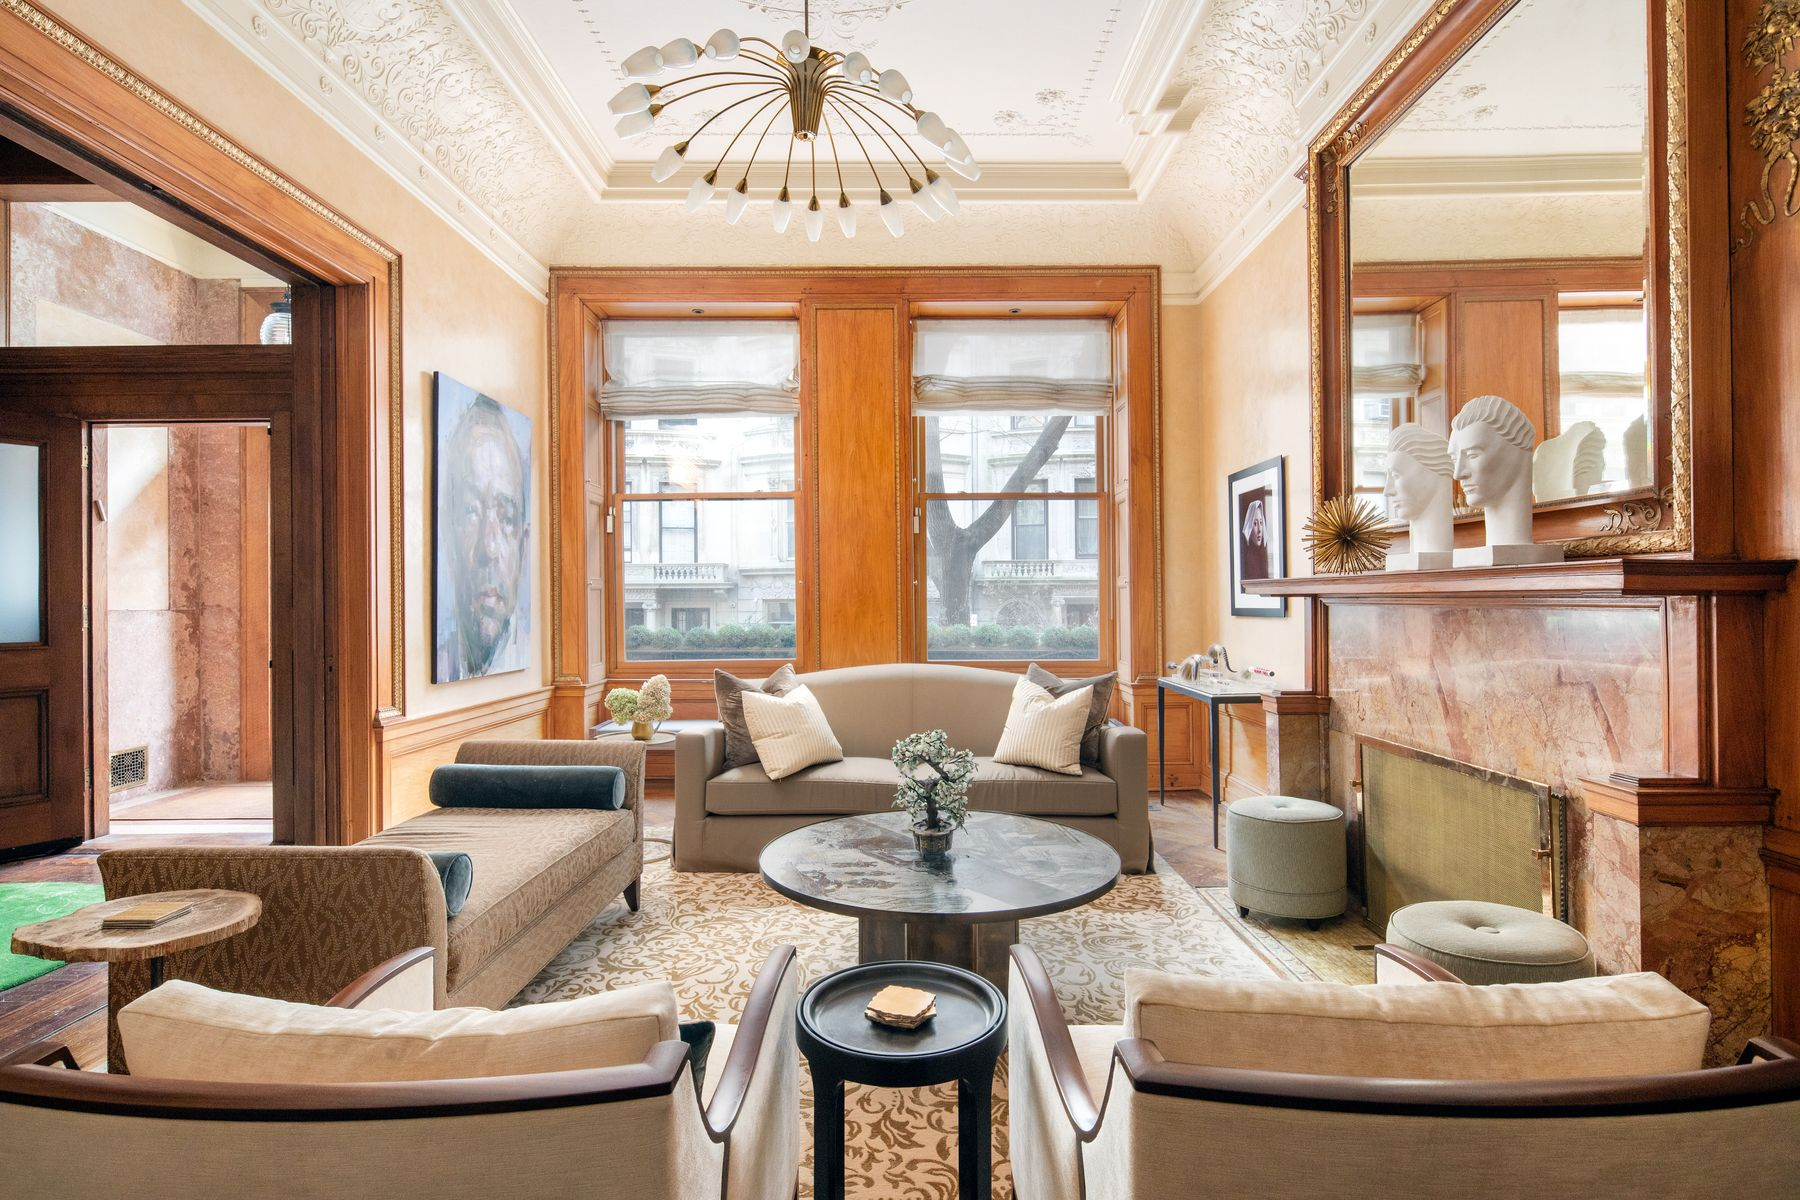 Townhouse for Sale at Grand Renovated Brownstone: 15 West 76th 15 West 76th Street New York, New York 10023 United States